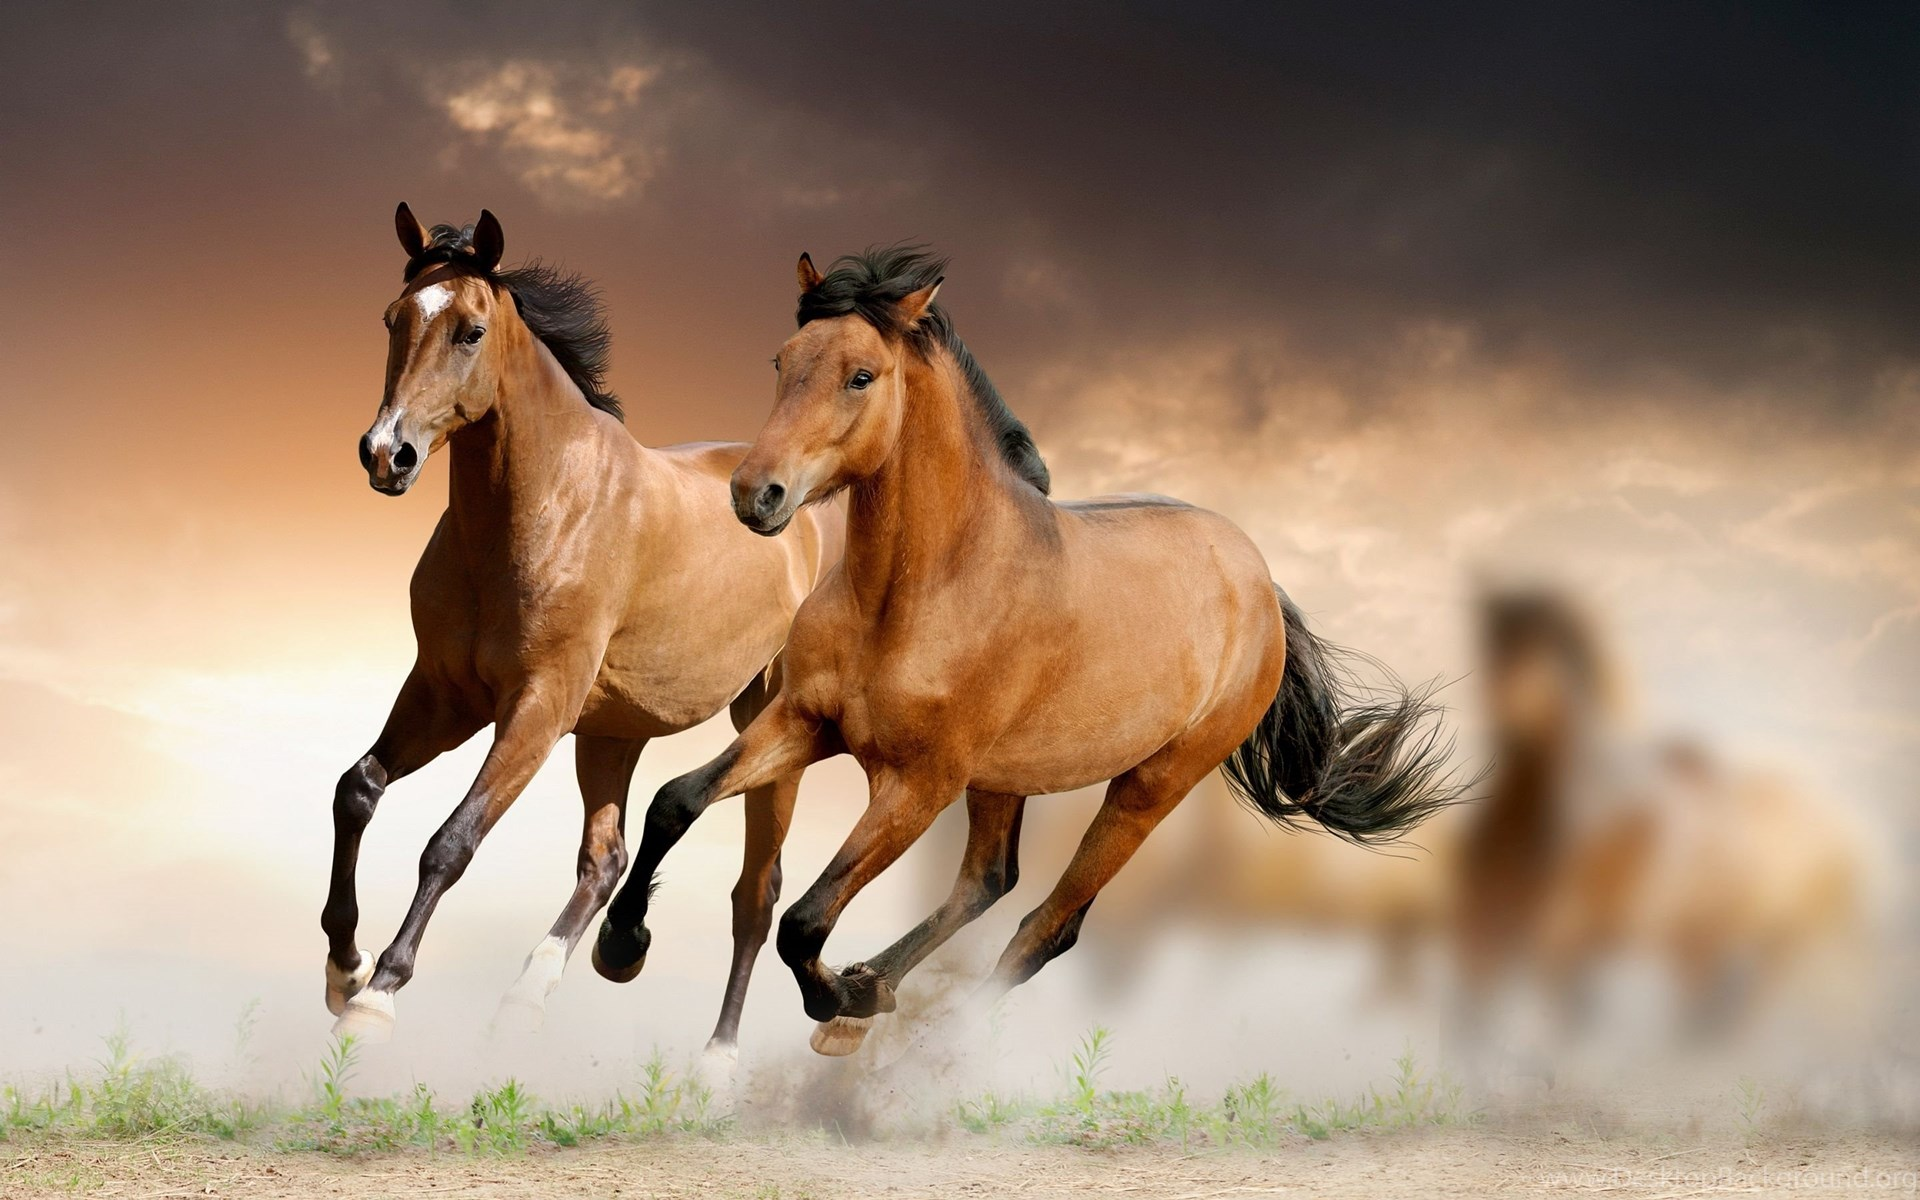 best horse wallpapers desktop background